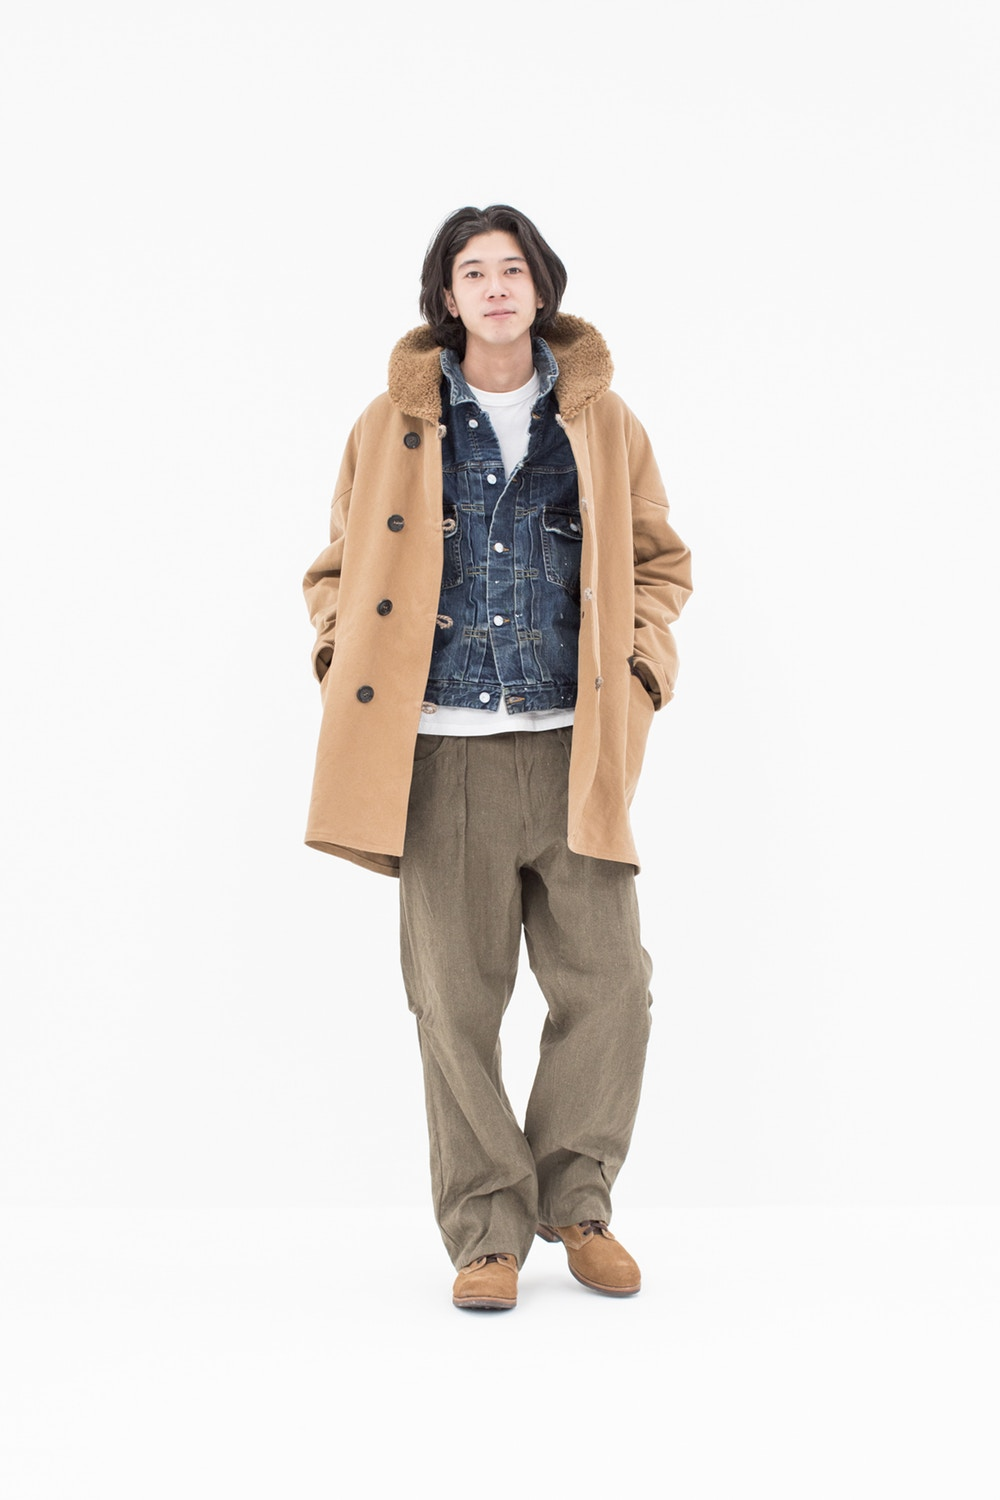 visvim-2018-fall-winter-lookbook-3.jpg